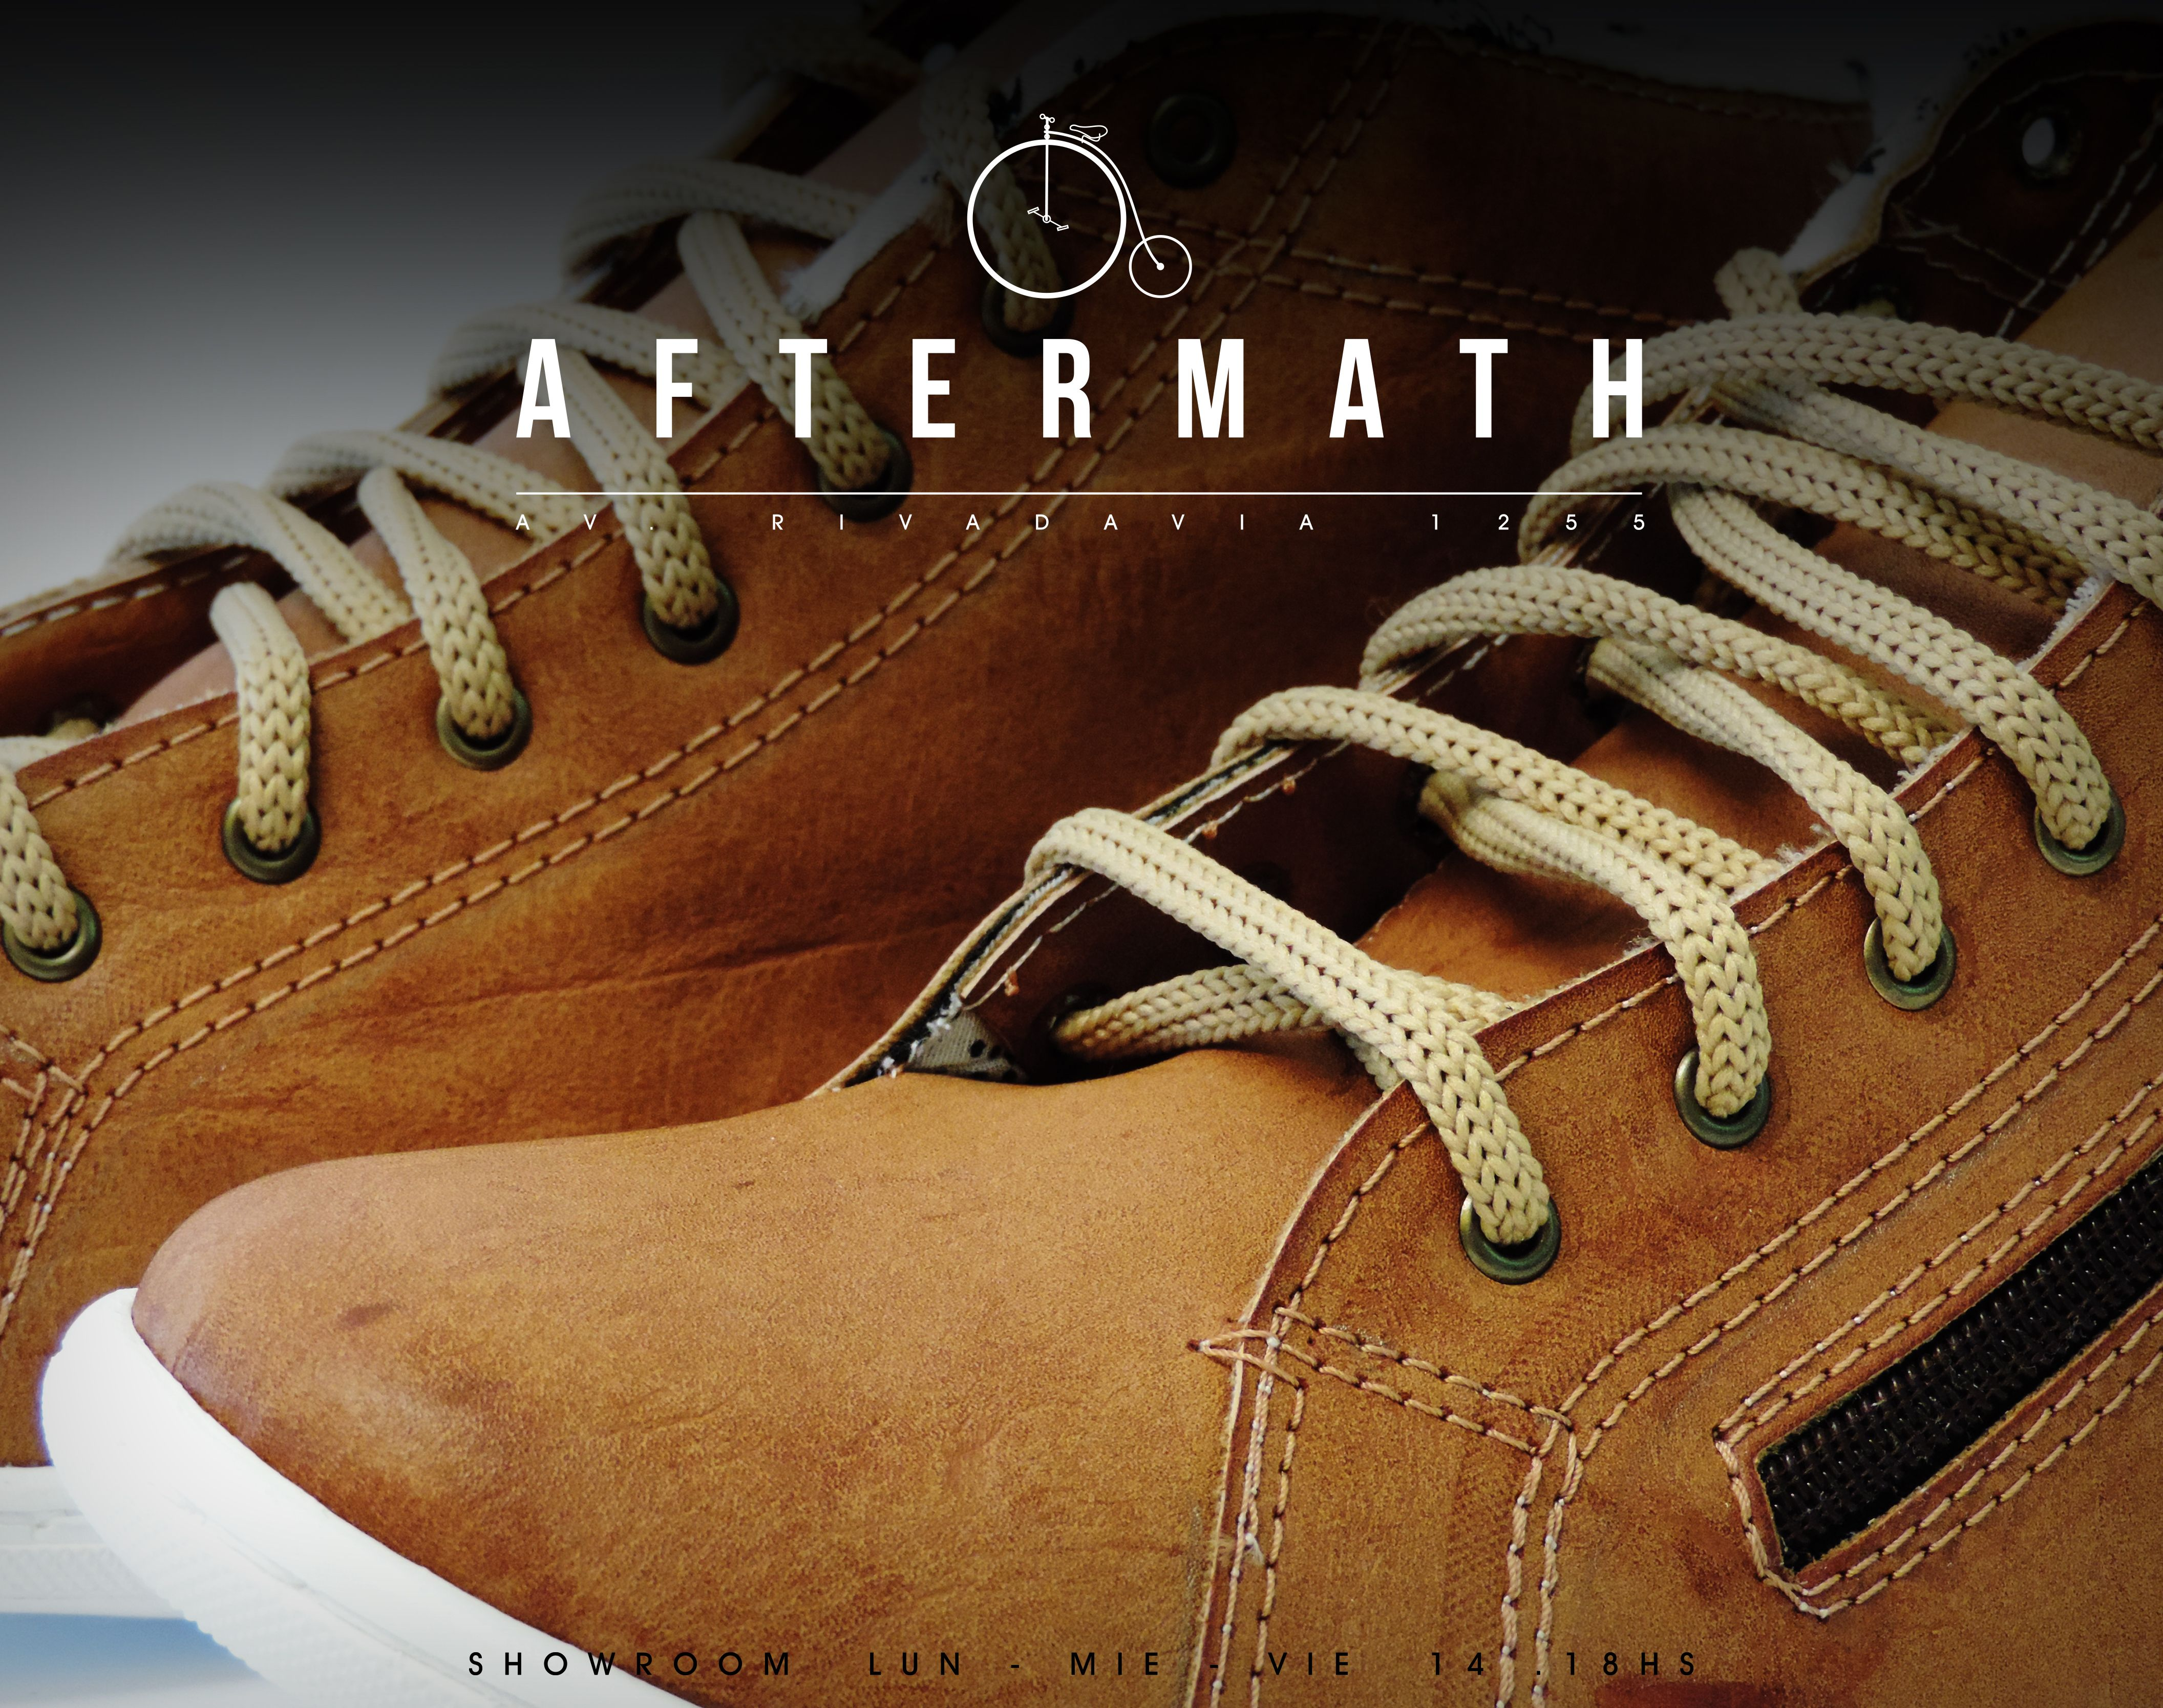 BRAND AFTERMATH SHOES #branding #shoes